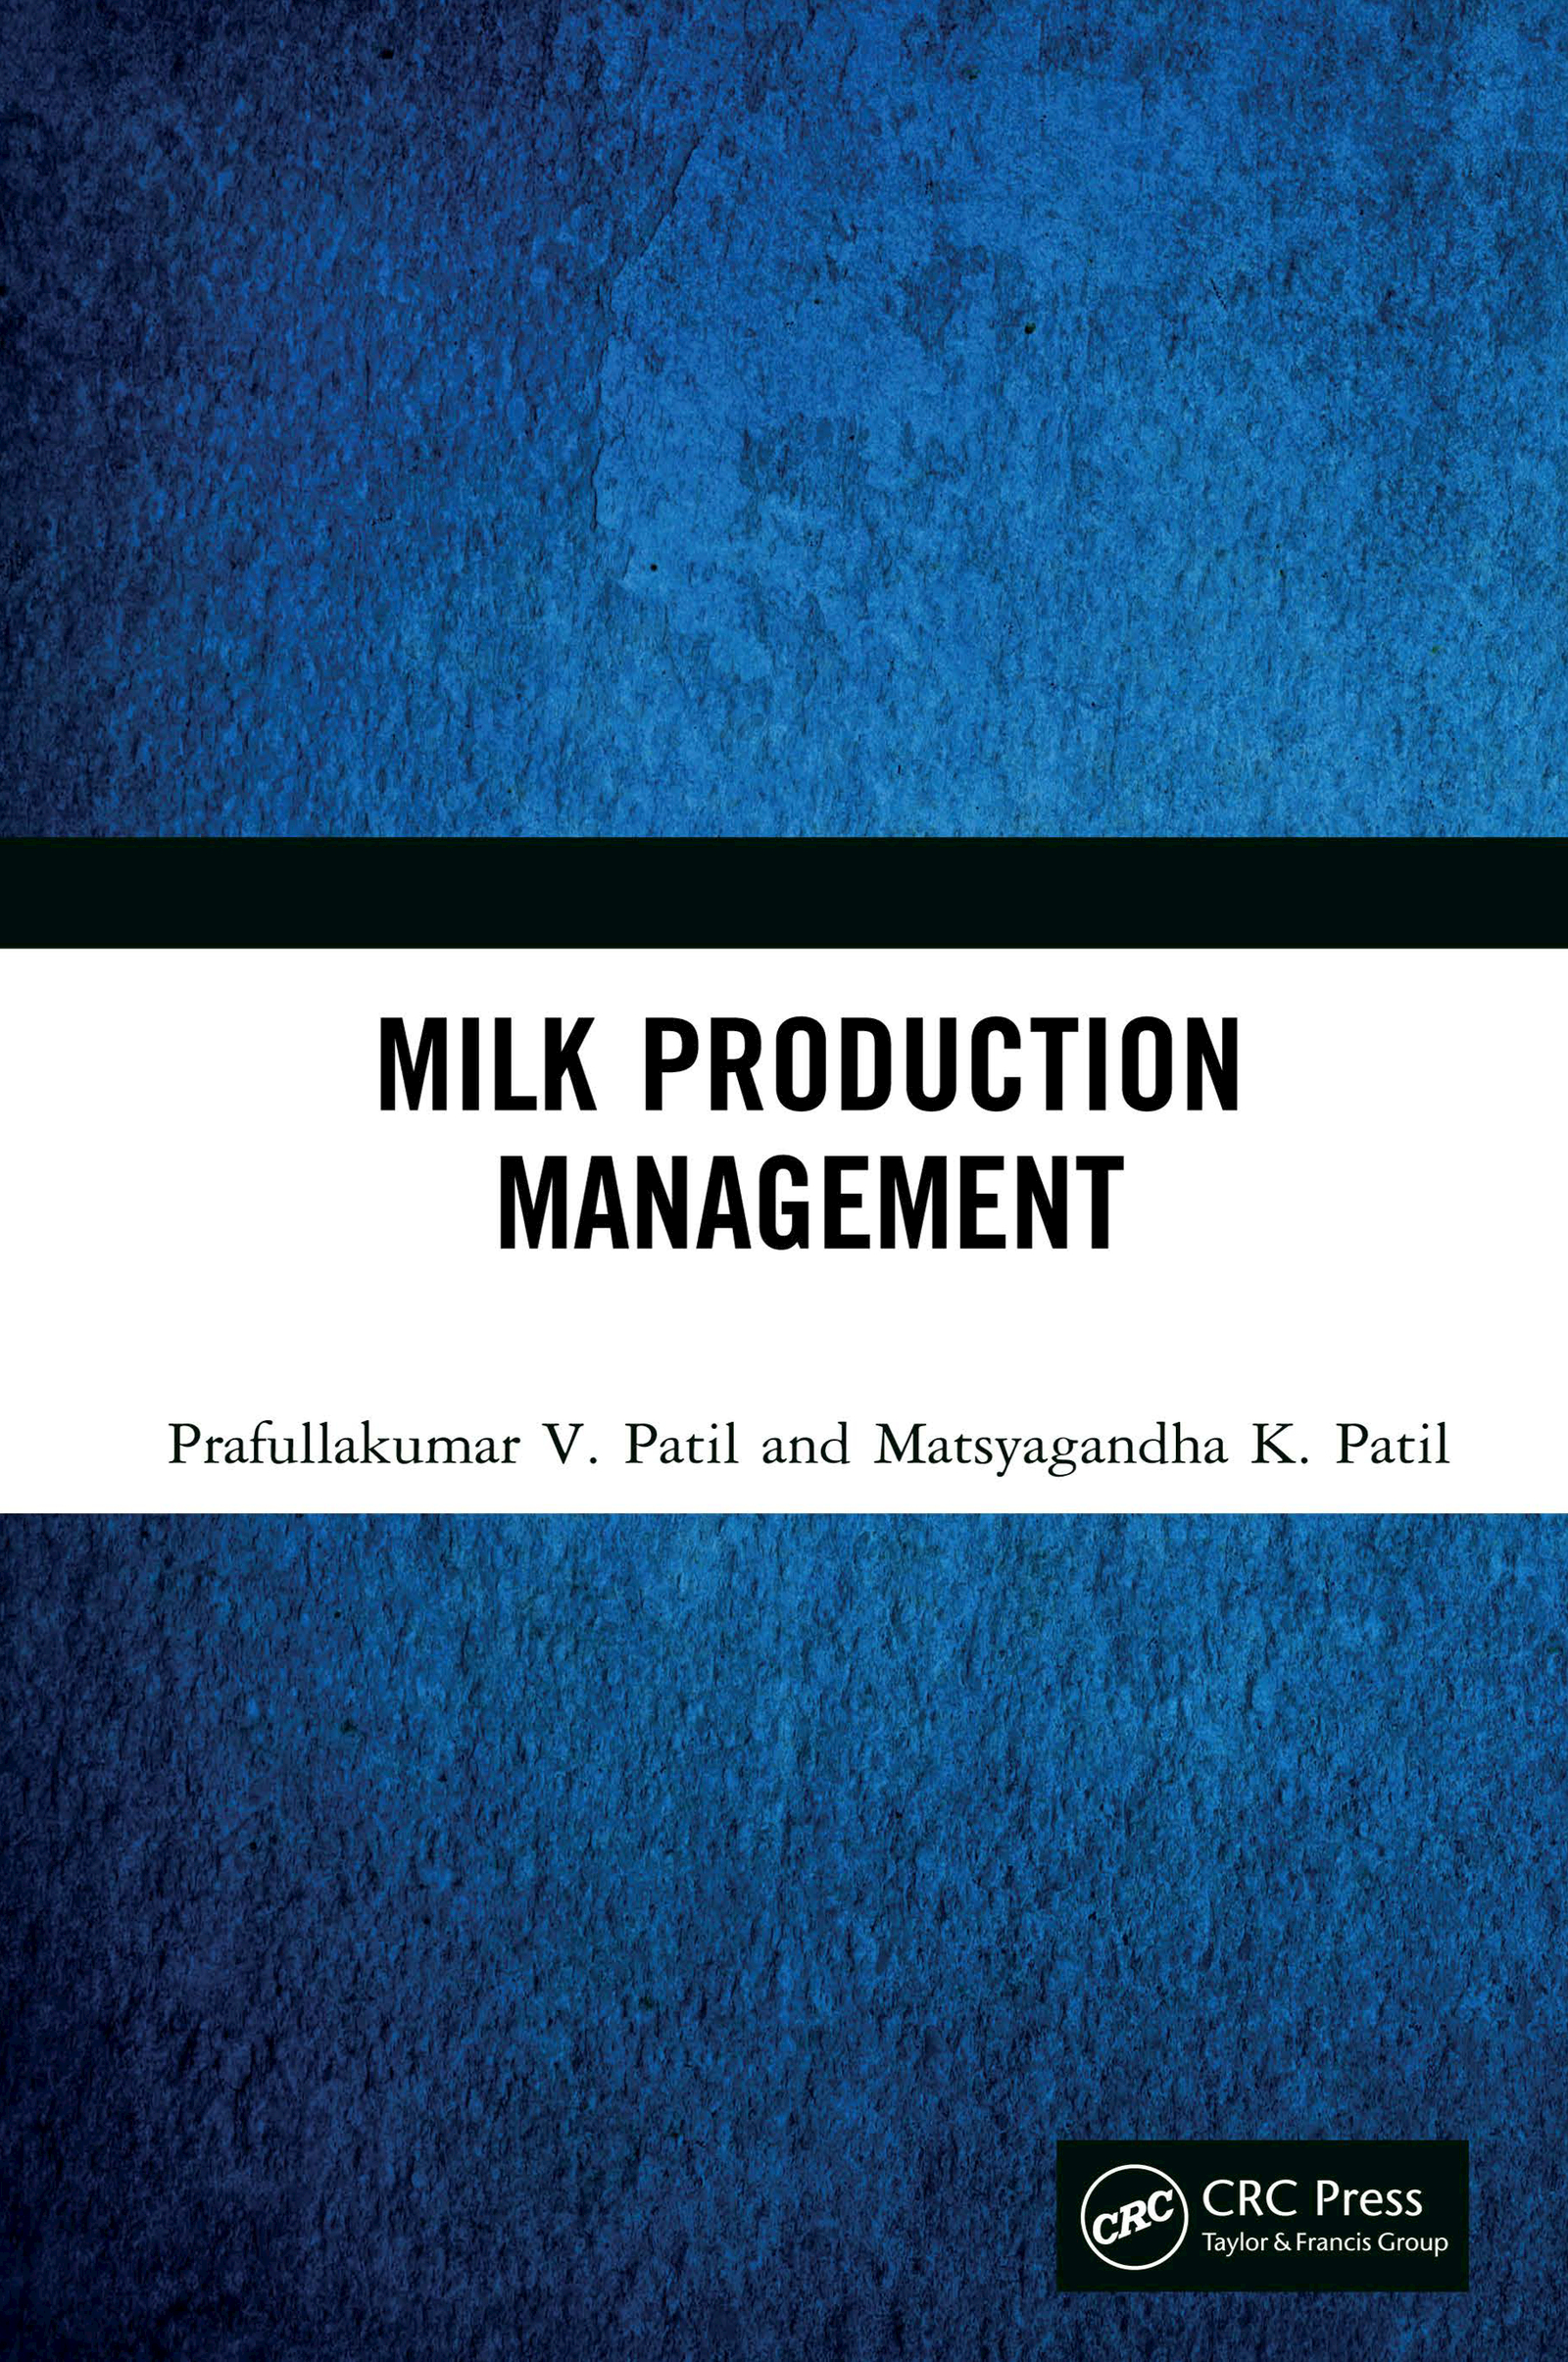 General Dairy Farm Practices-Identification, Dehorning, Castration, Exercising, Grooming, Weighing.